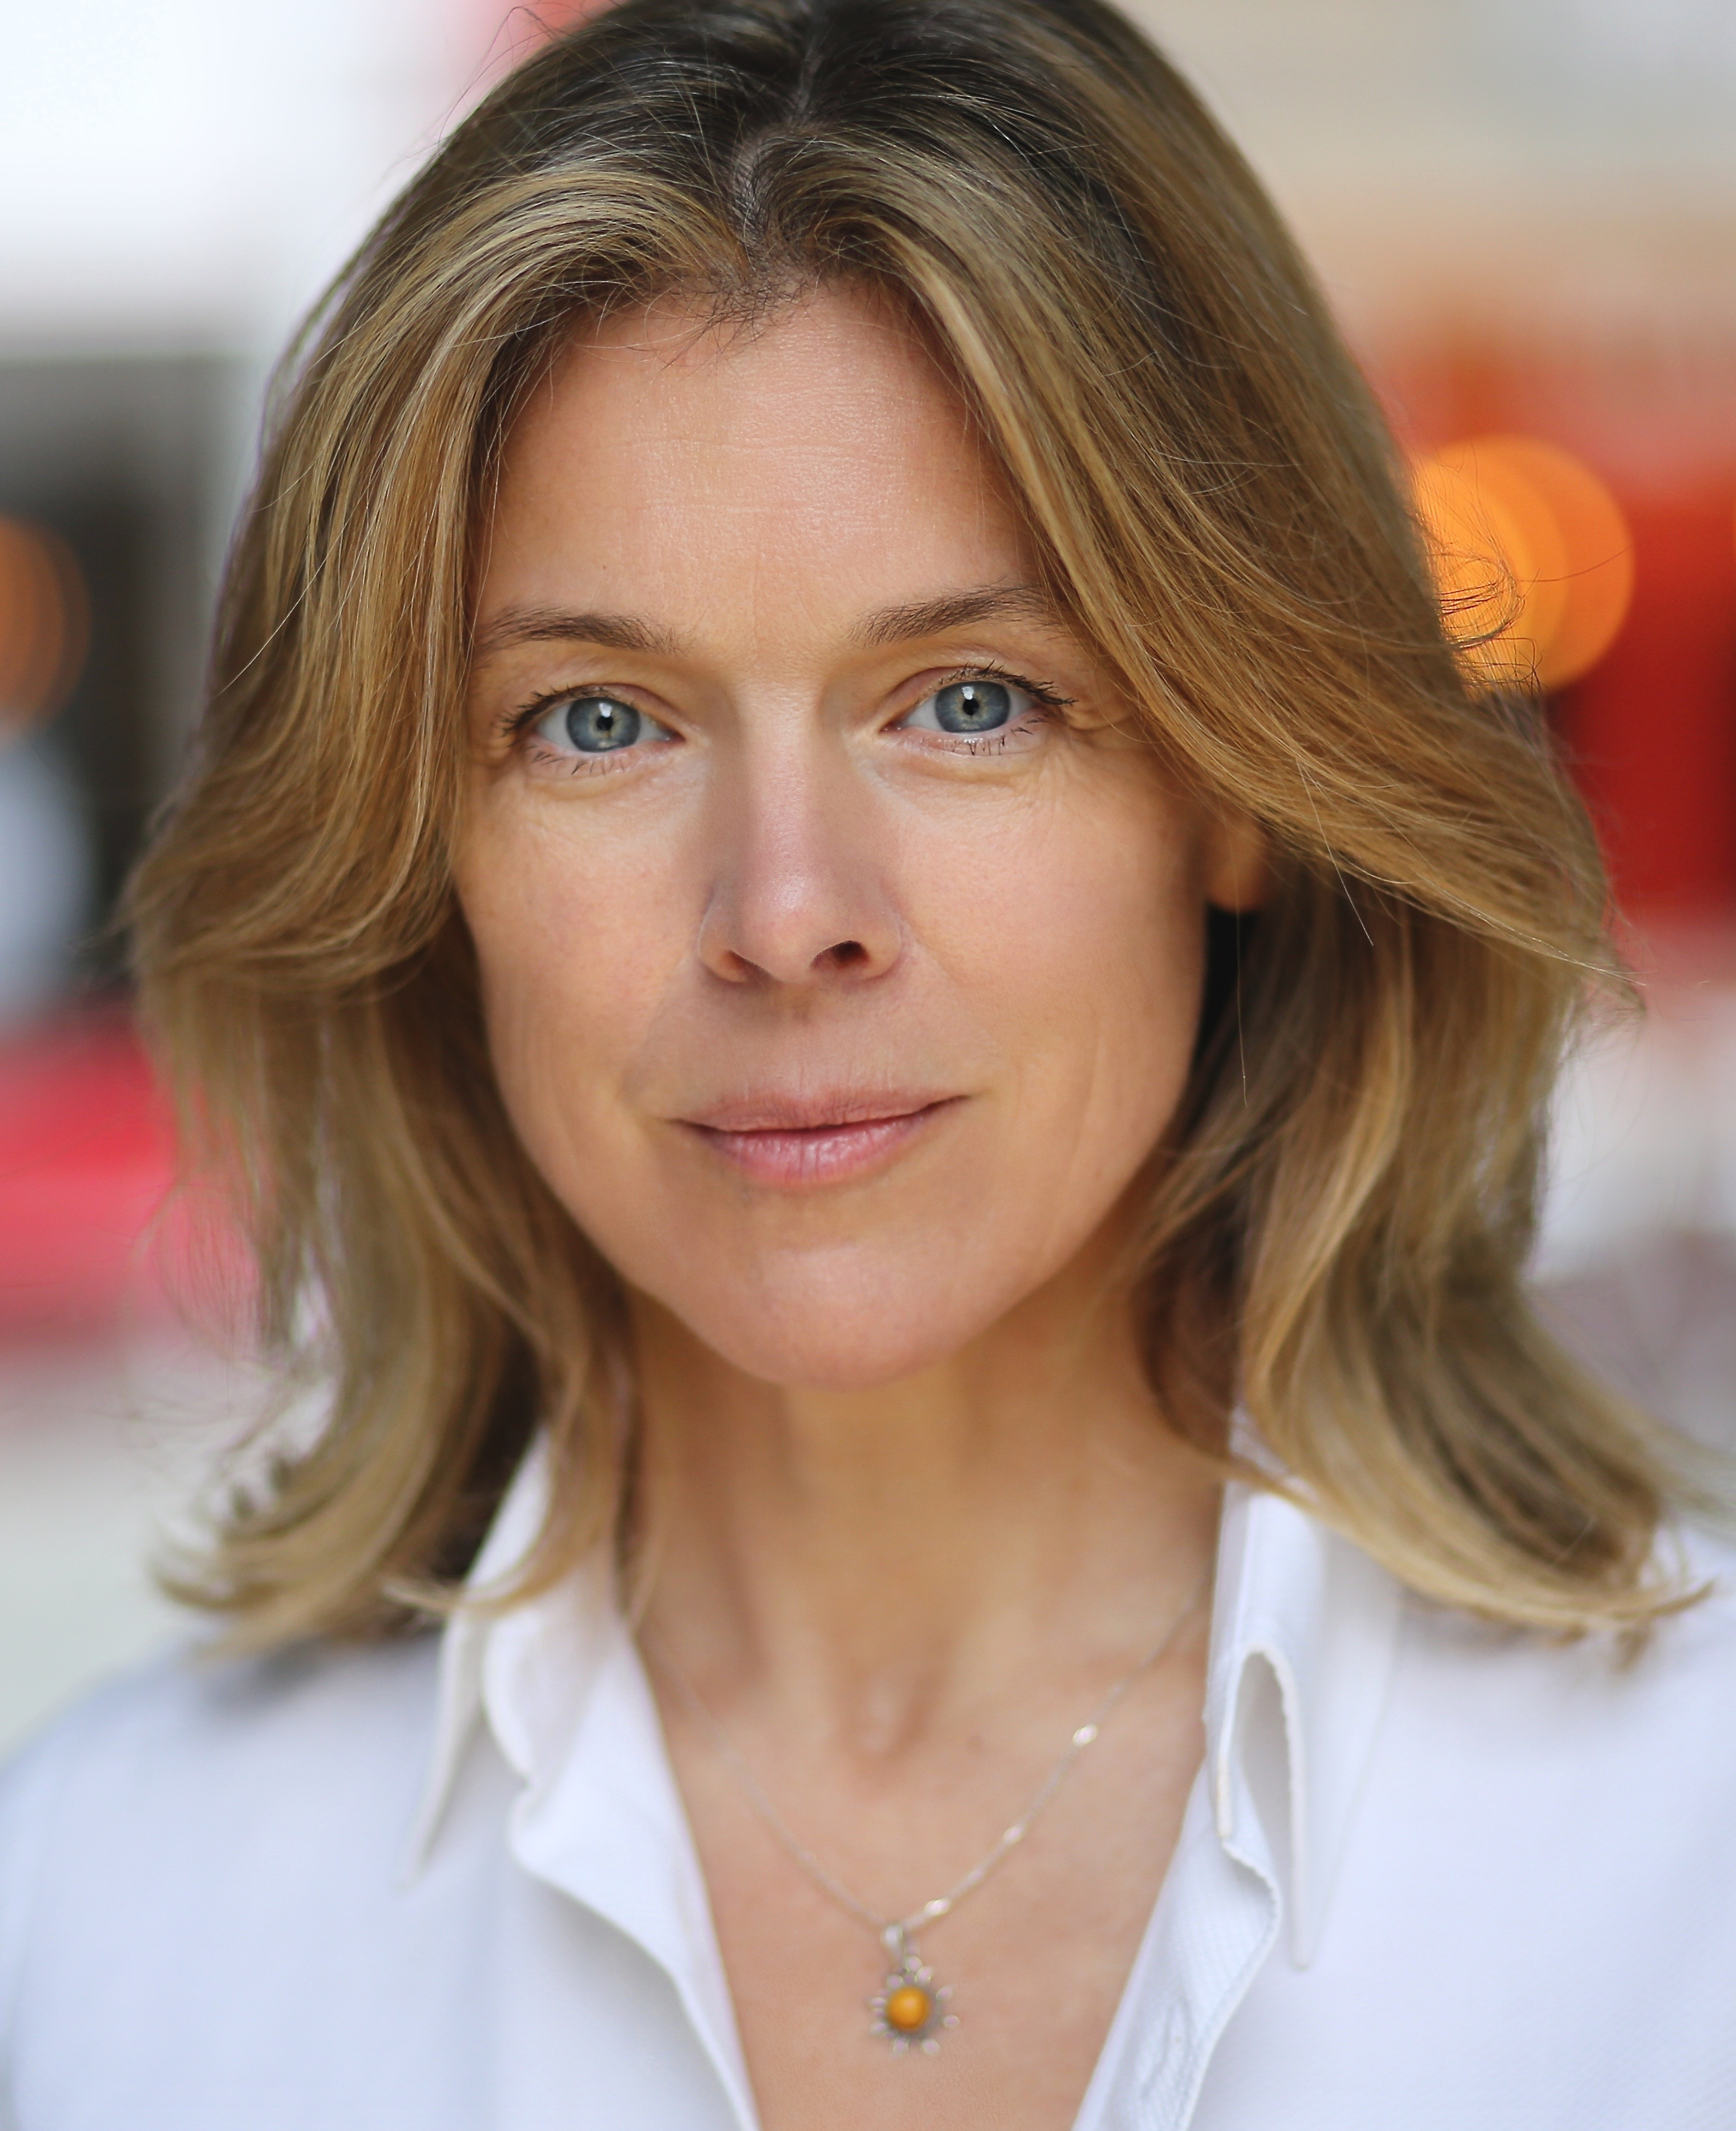 Discussion on this topic: Felicia Montealegre, geraldine-page/